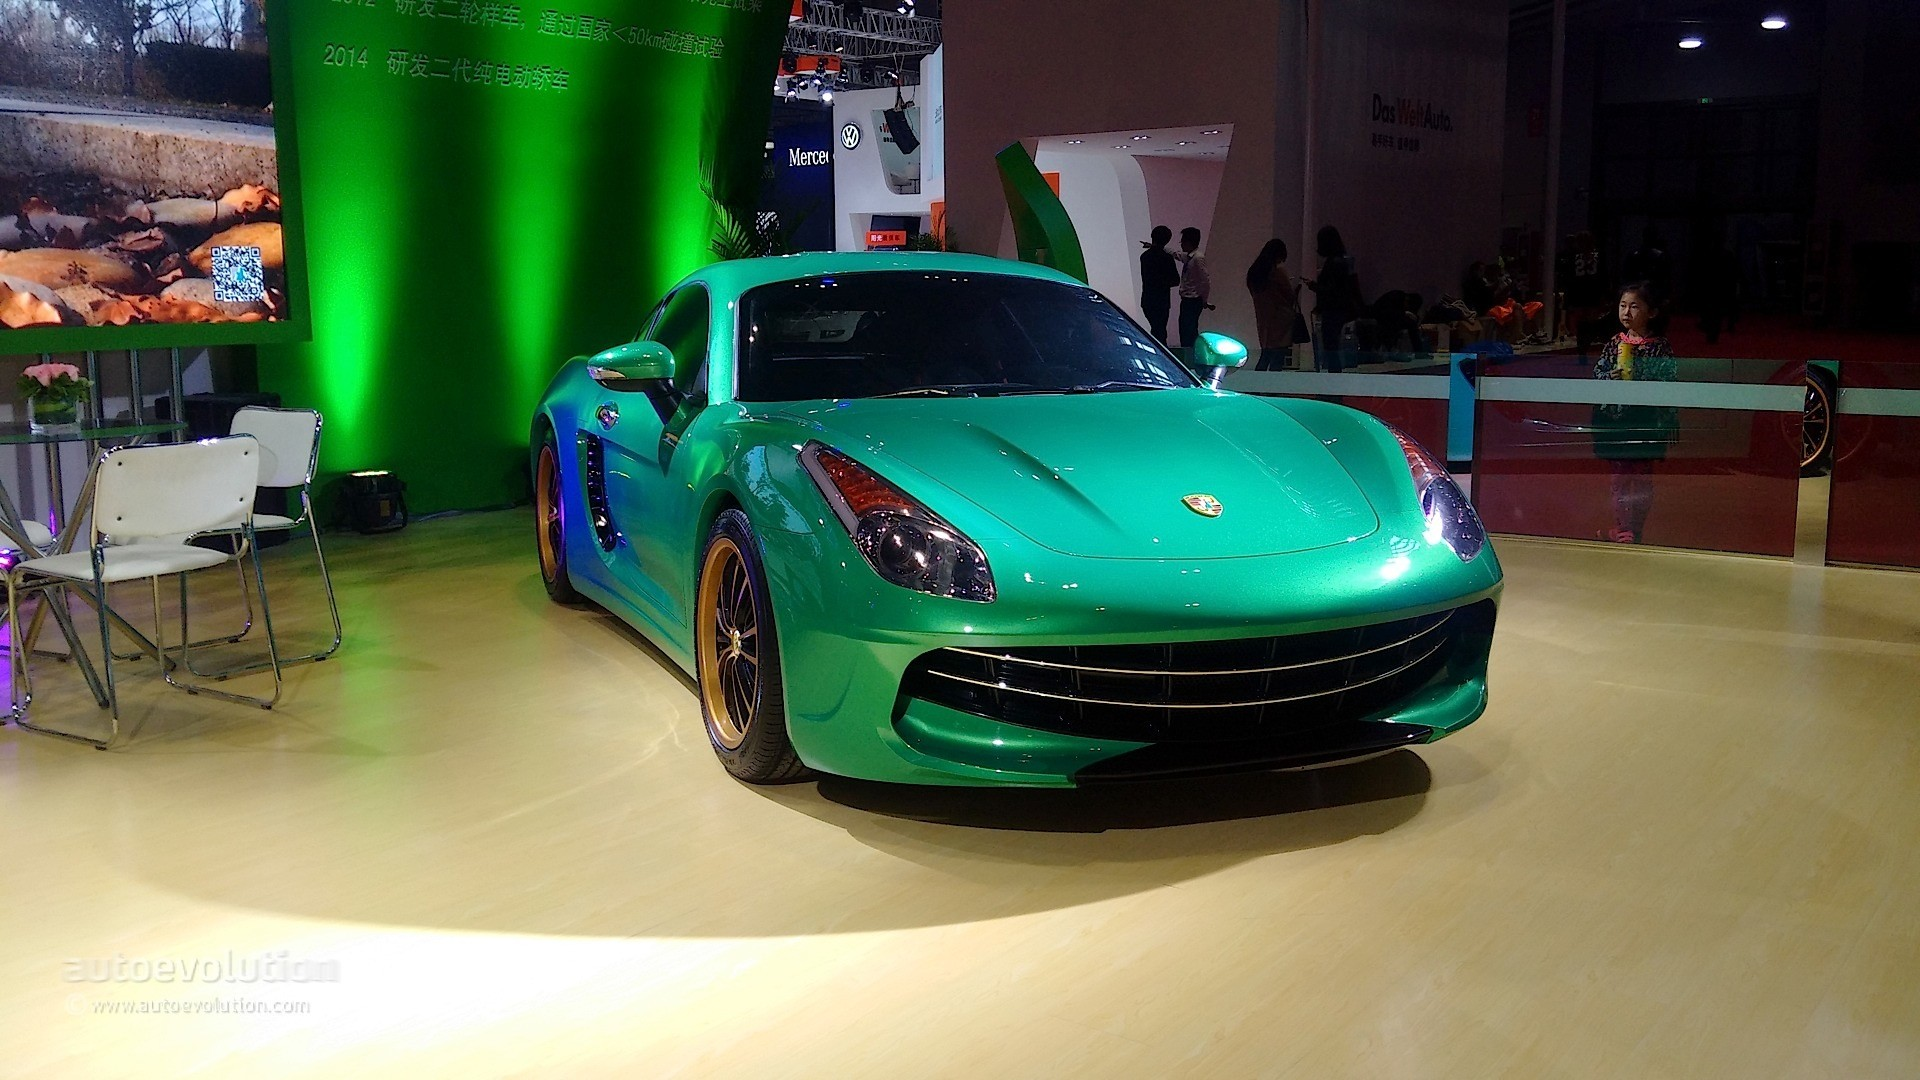 This Smiling Ferrari Is A Chinese Porsche Cayman Copycat